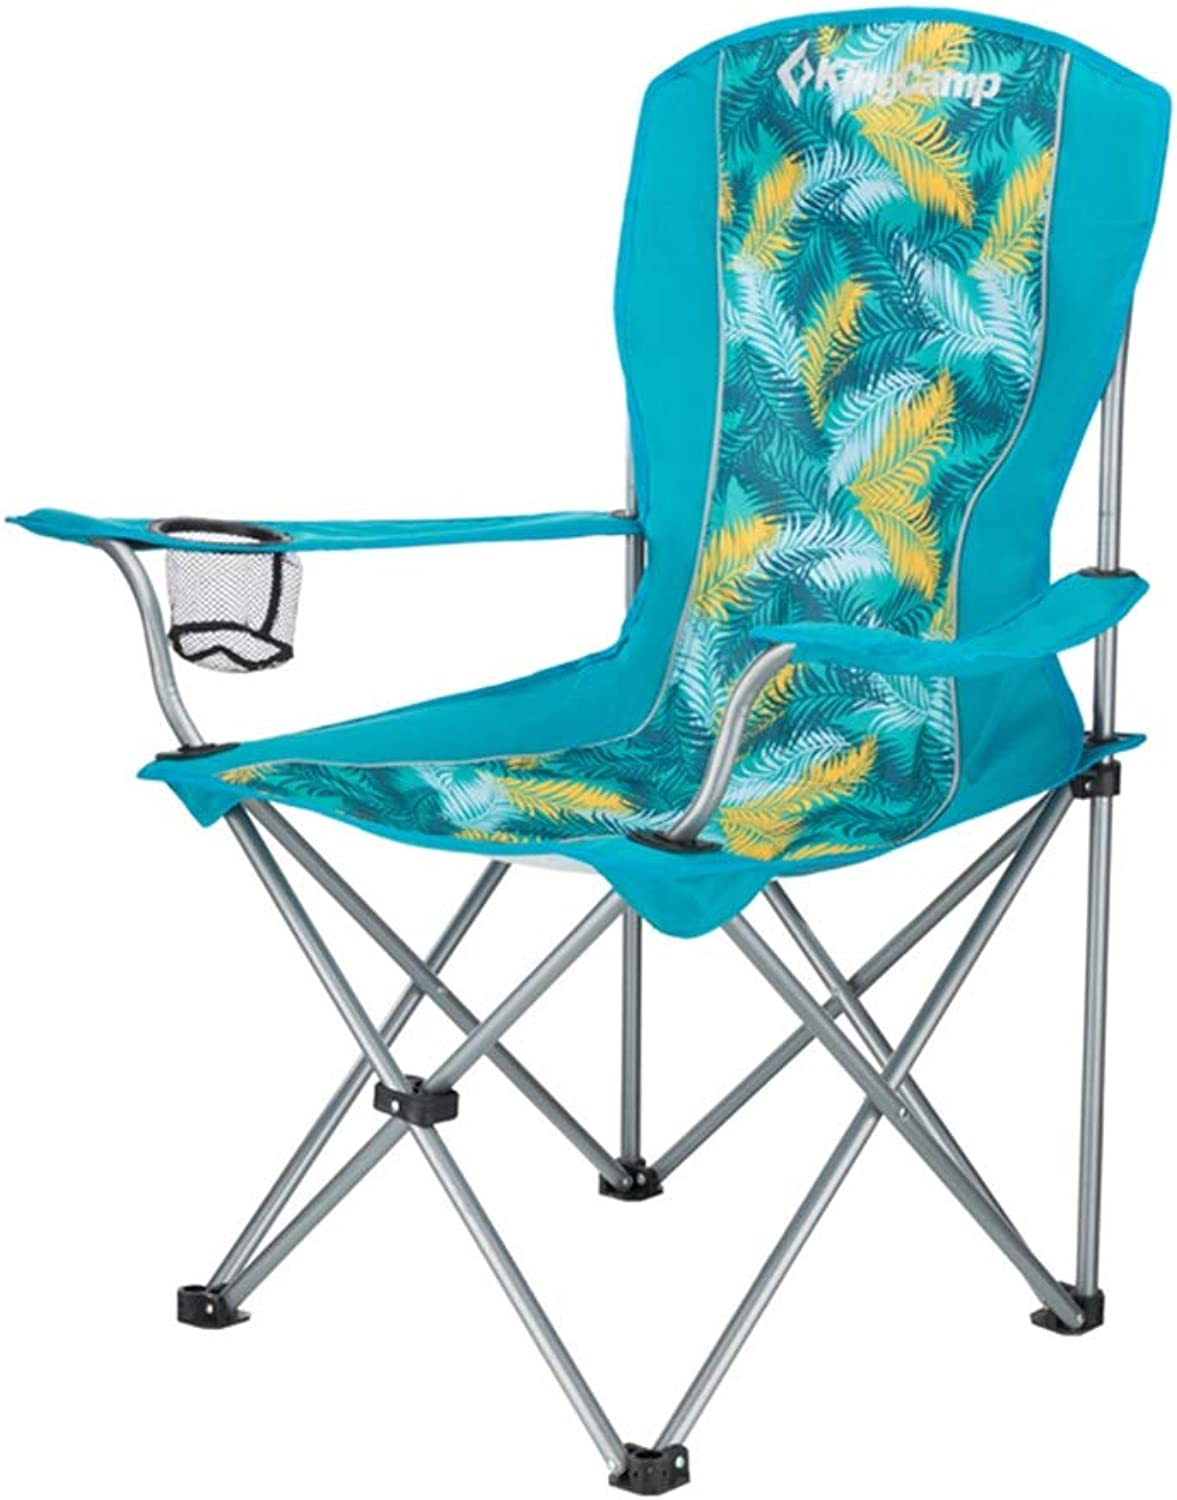 Lounge Chairs Folding Camping Chair Oxford Cloth Portable Folding Beach Fishing Barbecue Garden Sports Chair with Cup Holder, Bearing 120kg (Multicolor)